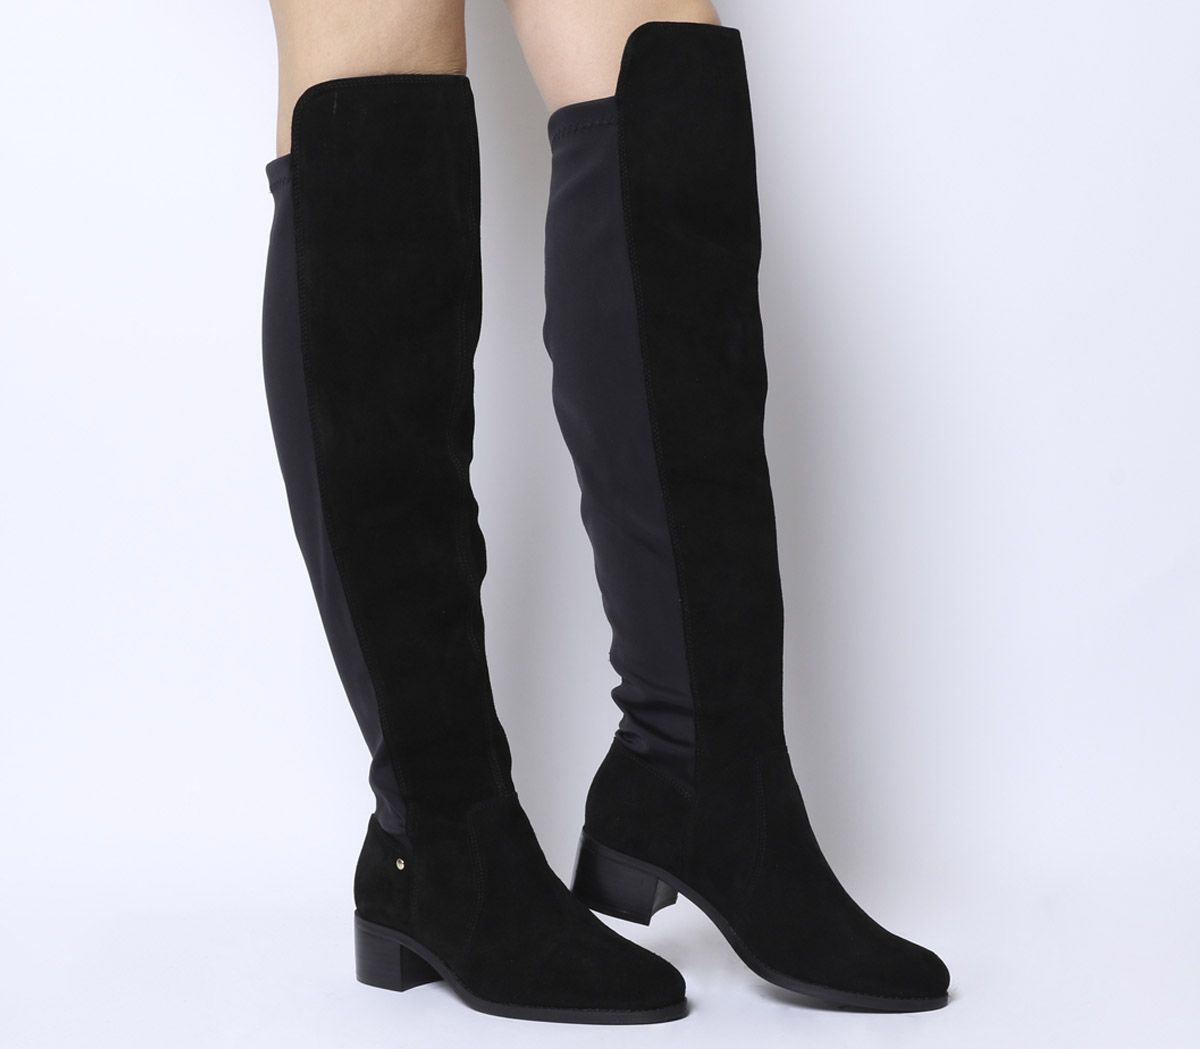 e22f3f678c6 Sentinel Womens Office Kite Stretch Back Over The Knee Boots Black Suede  Boots